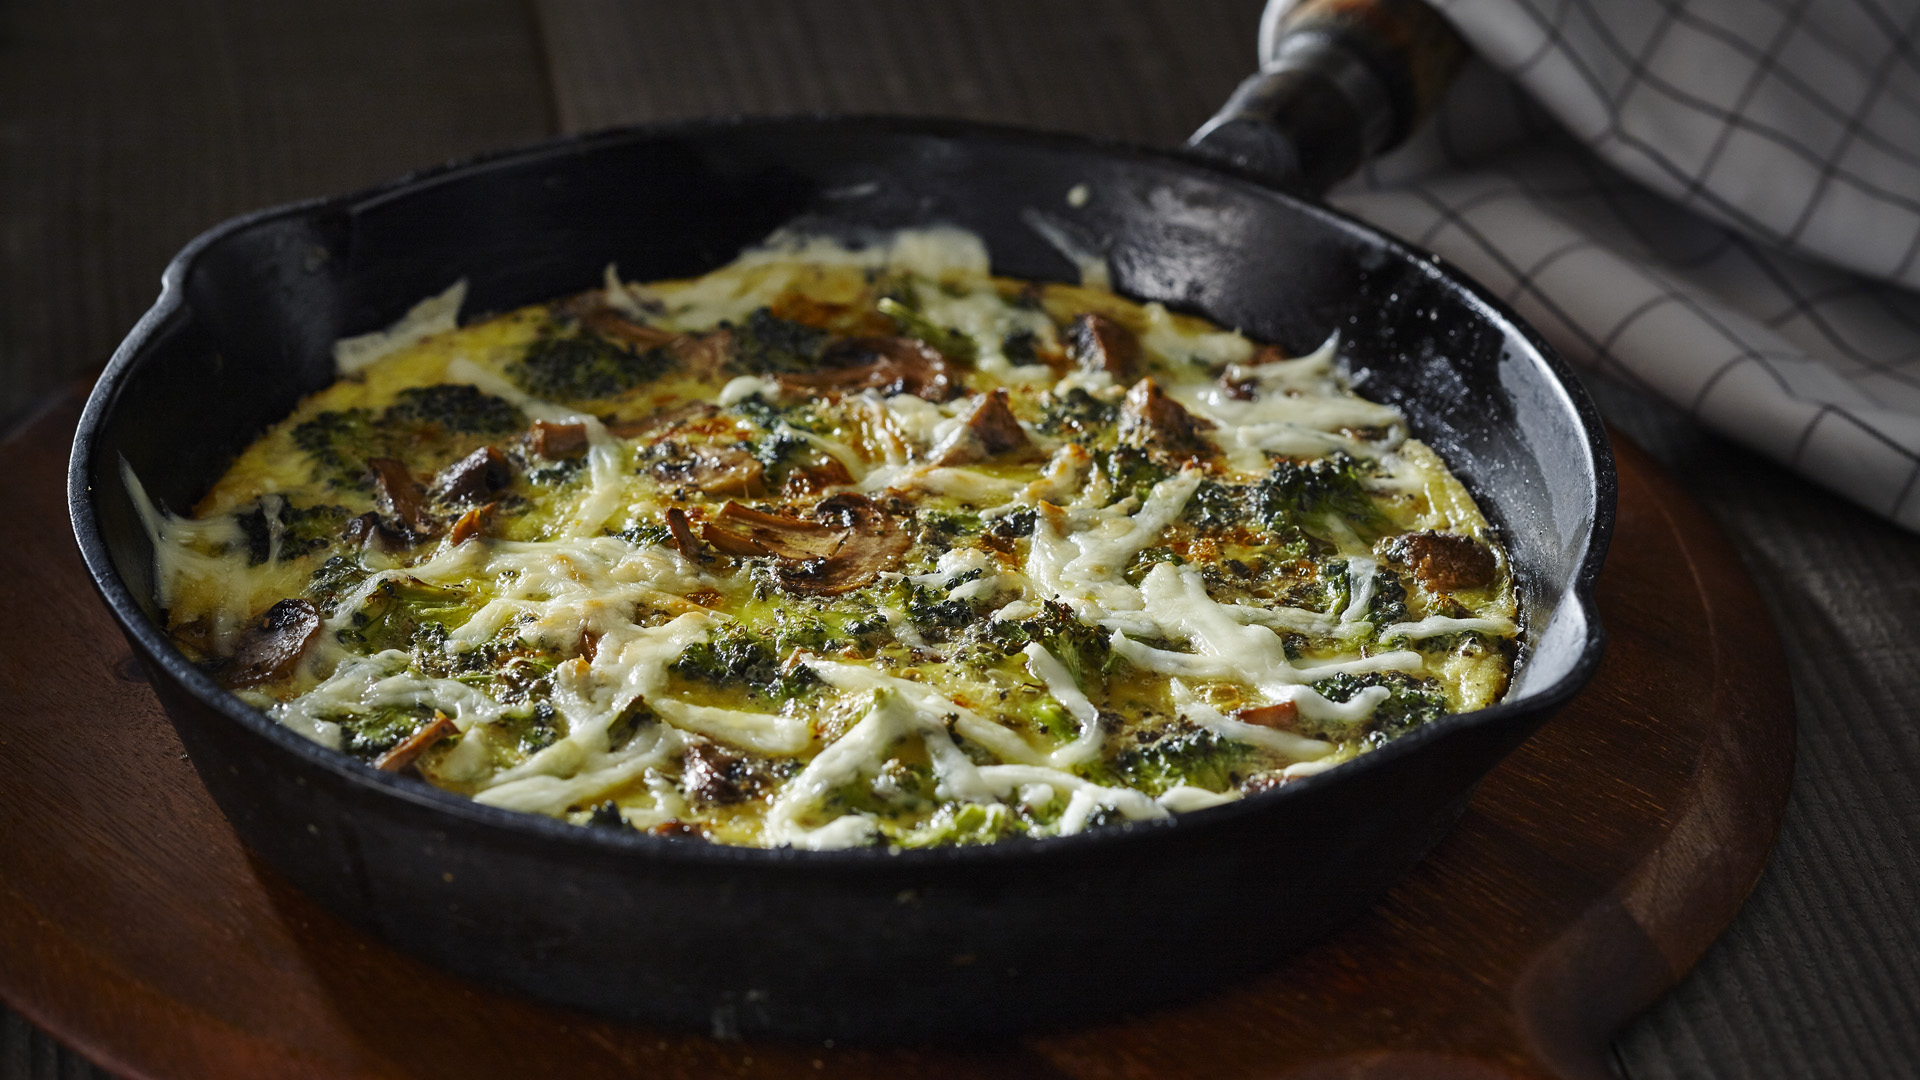 Broccoli and mushroom frittata with shredded mozzarella in a skillet